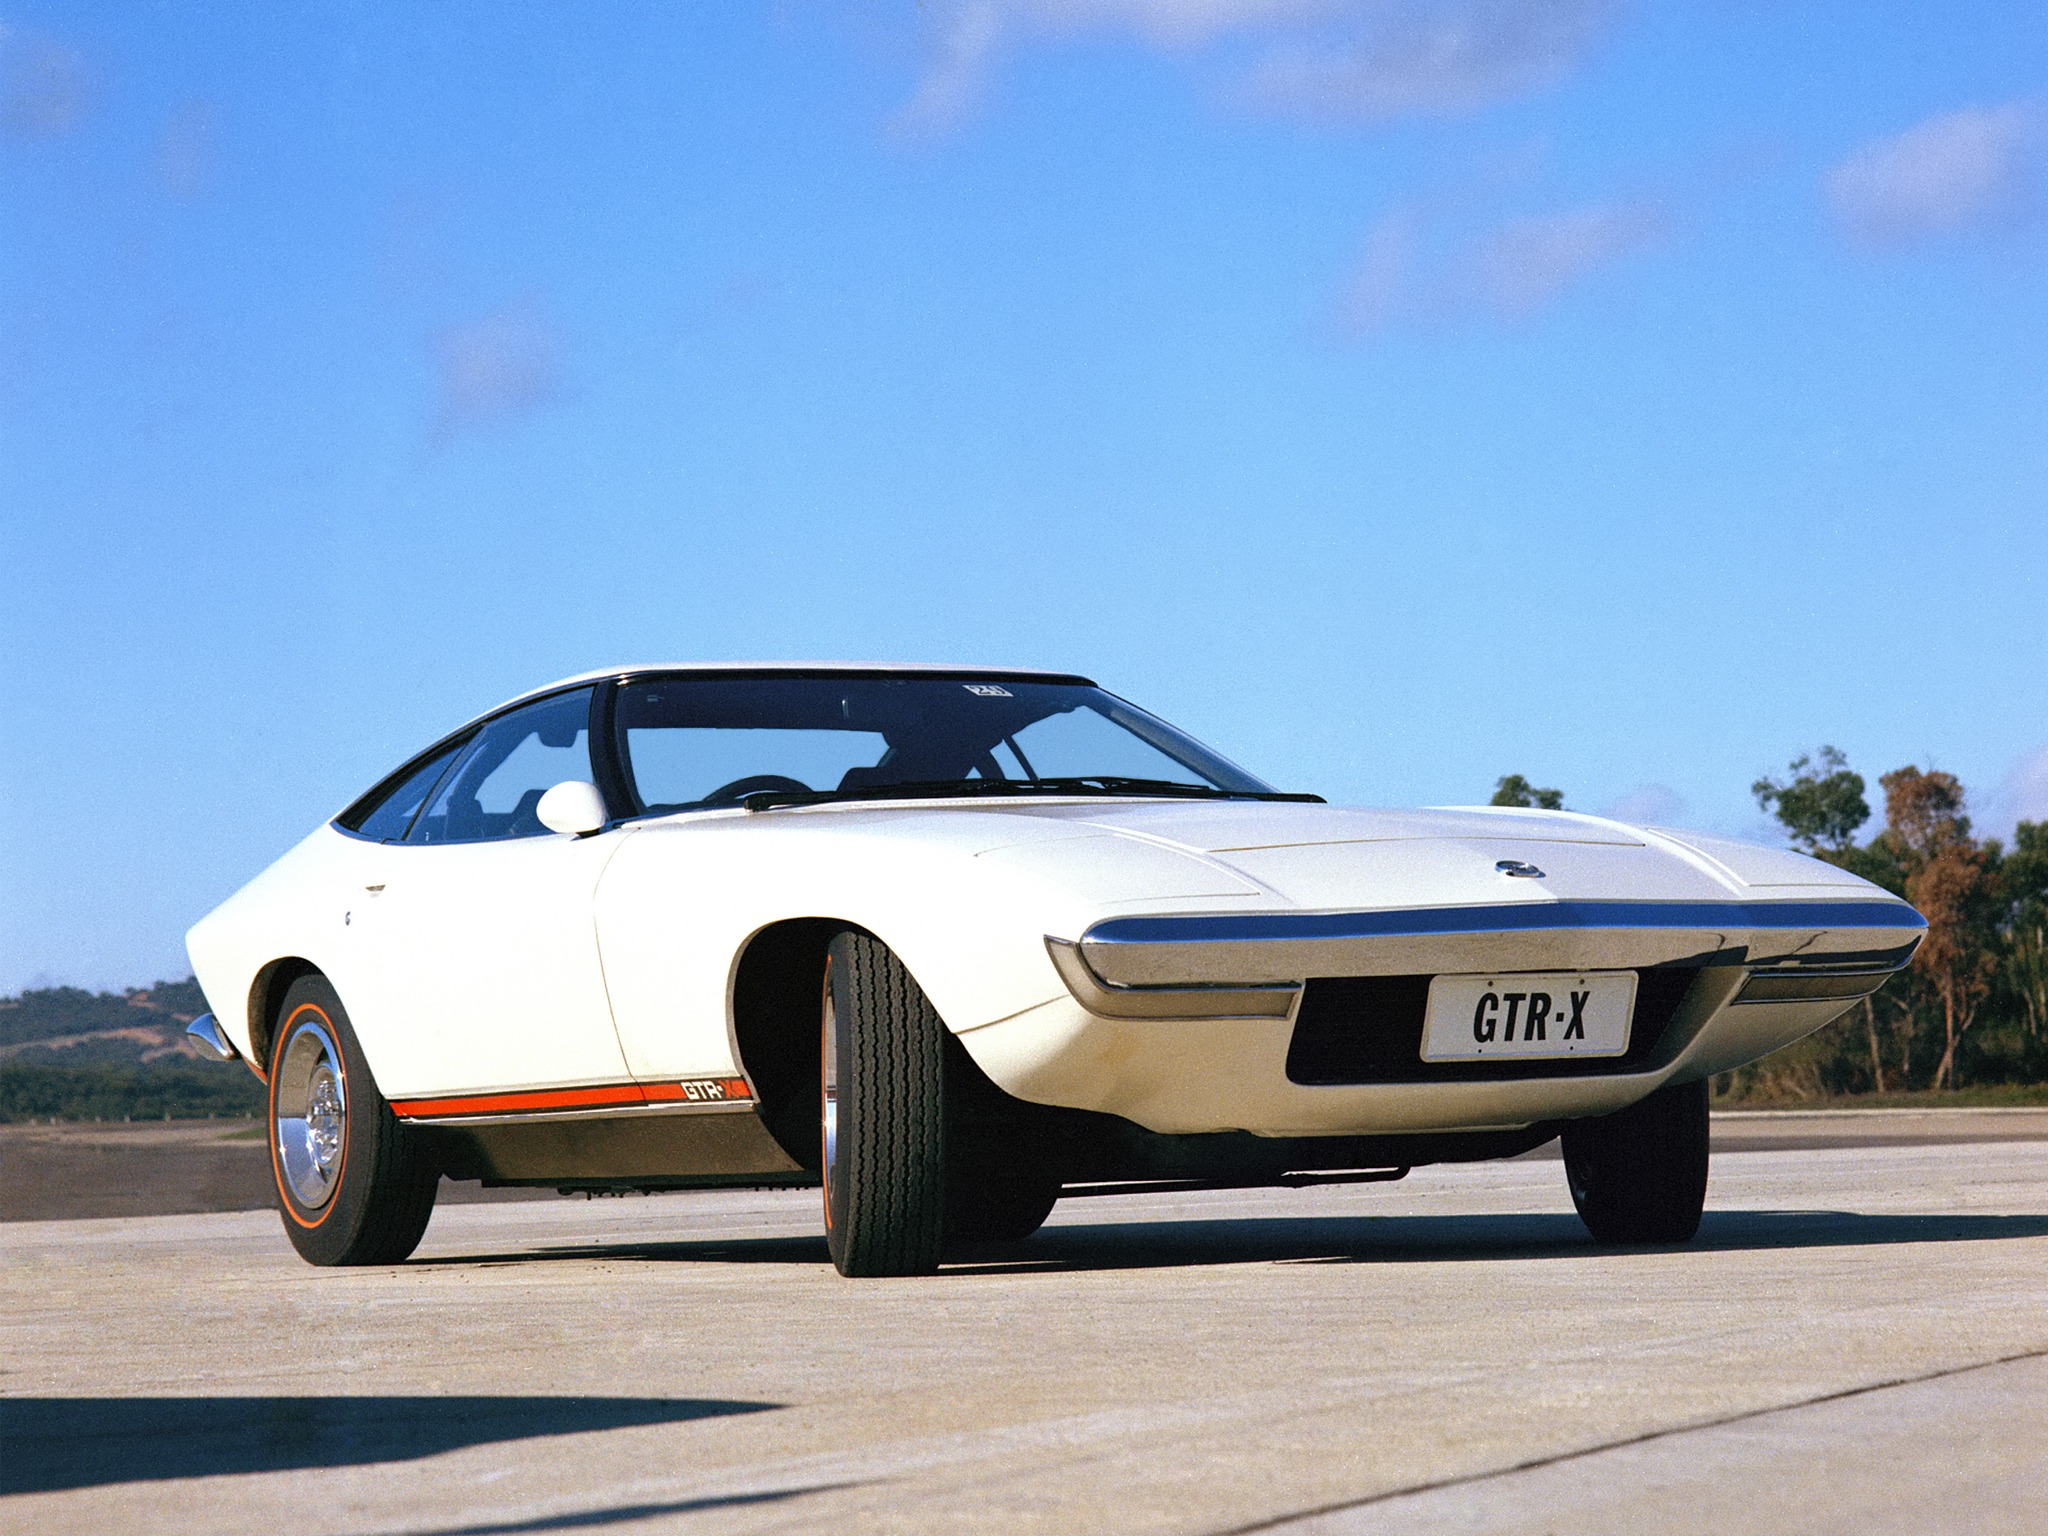 Holden Torana Gtr X 1970 Old Concept Cars HD Wallpapers Download free images and photos [musssic.tk]